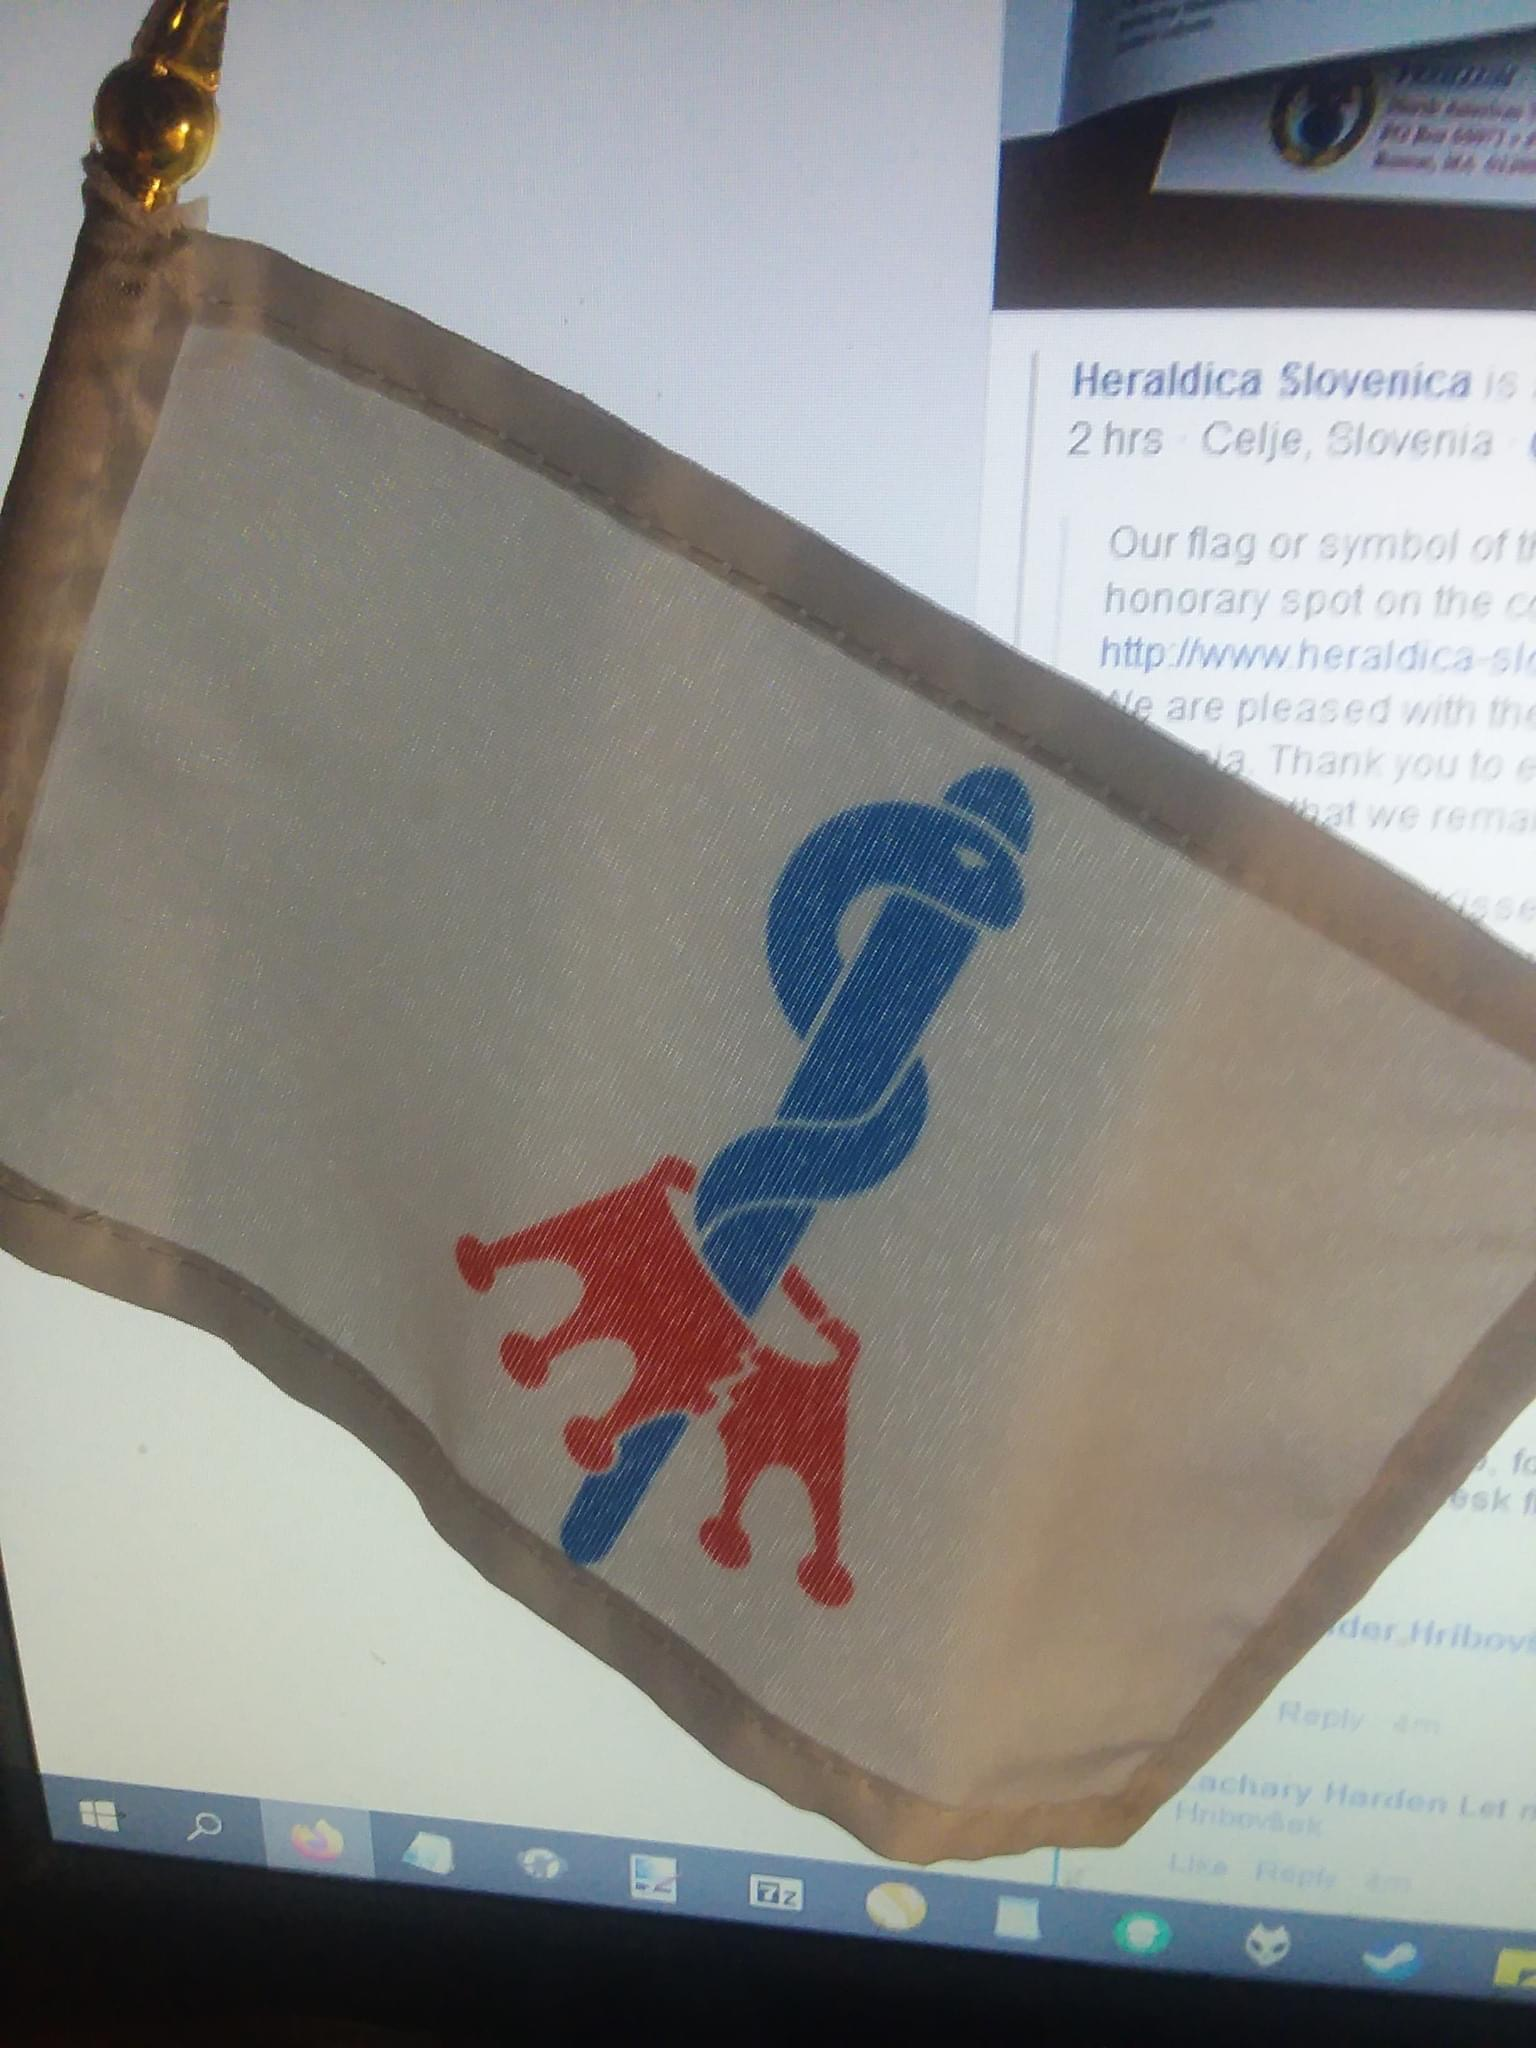 At the 54th meeting of the North American Vexillological Association (NAVA), held on June 13, 2020, the sponsors received 'anticorona' table flags. Photo: Zachary Harden, 1 July 2020.